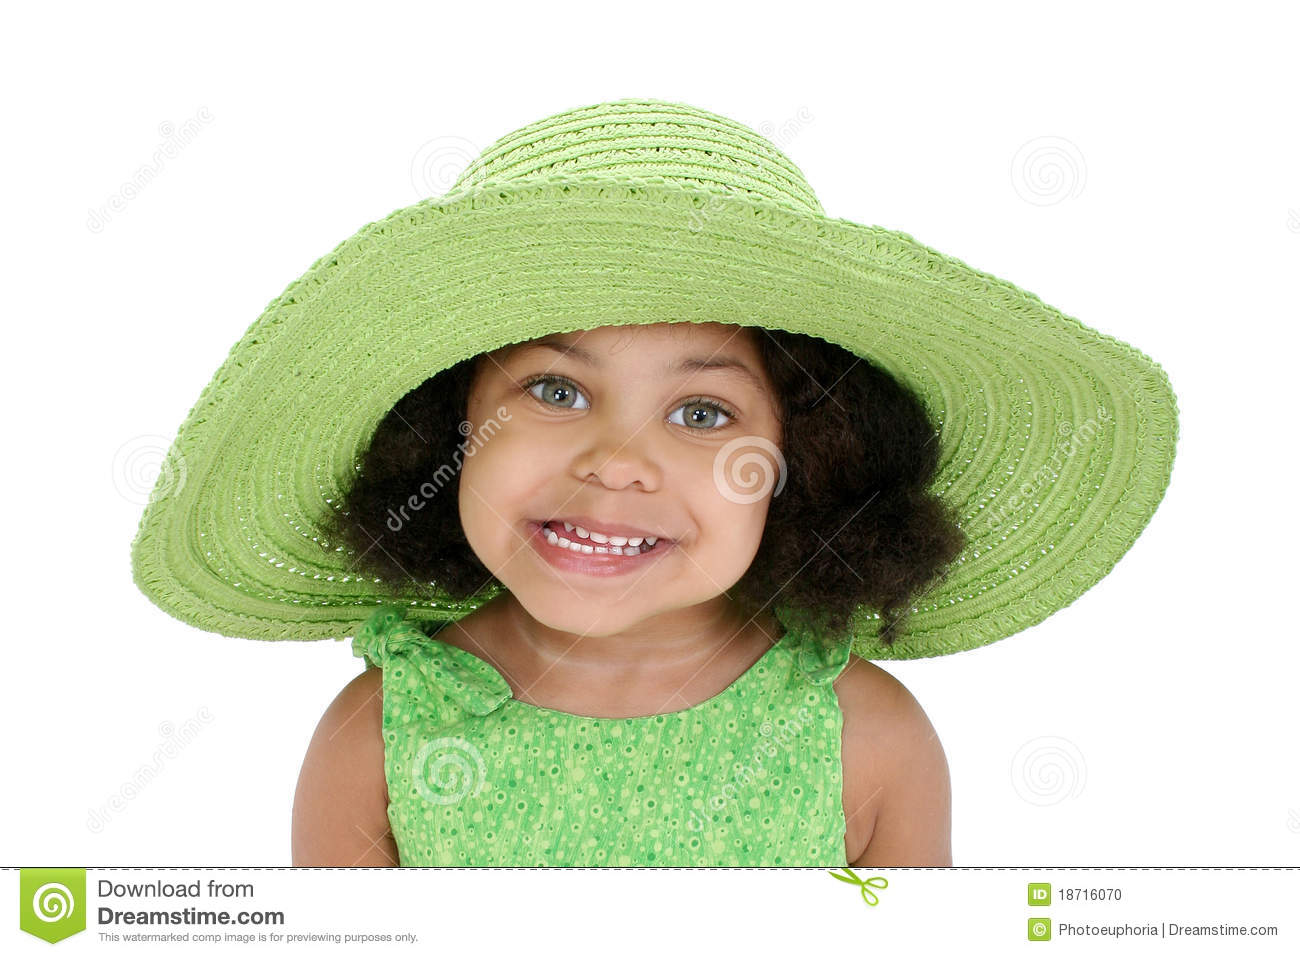 67c89a2101e Little Girl Floppy Hat Stock Images - Download 85 Royalty Free Photos